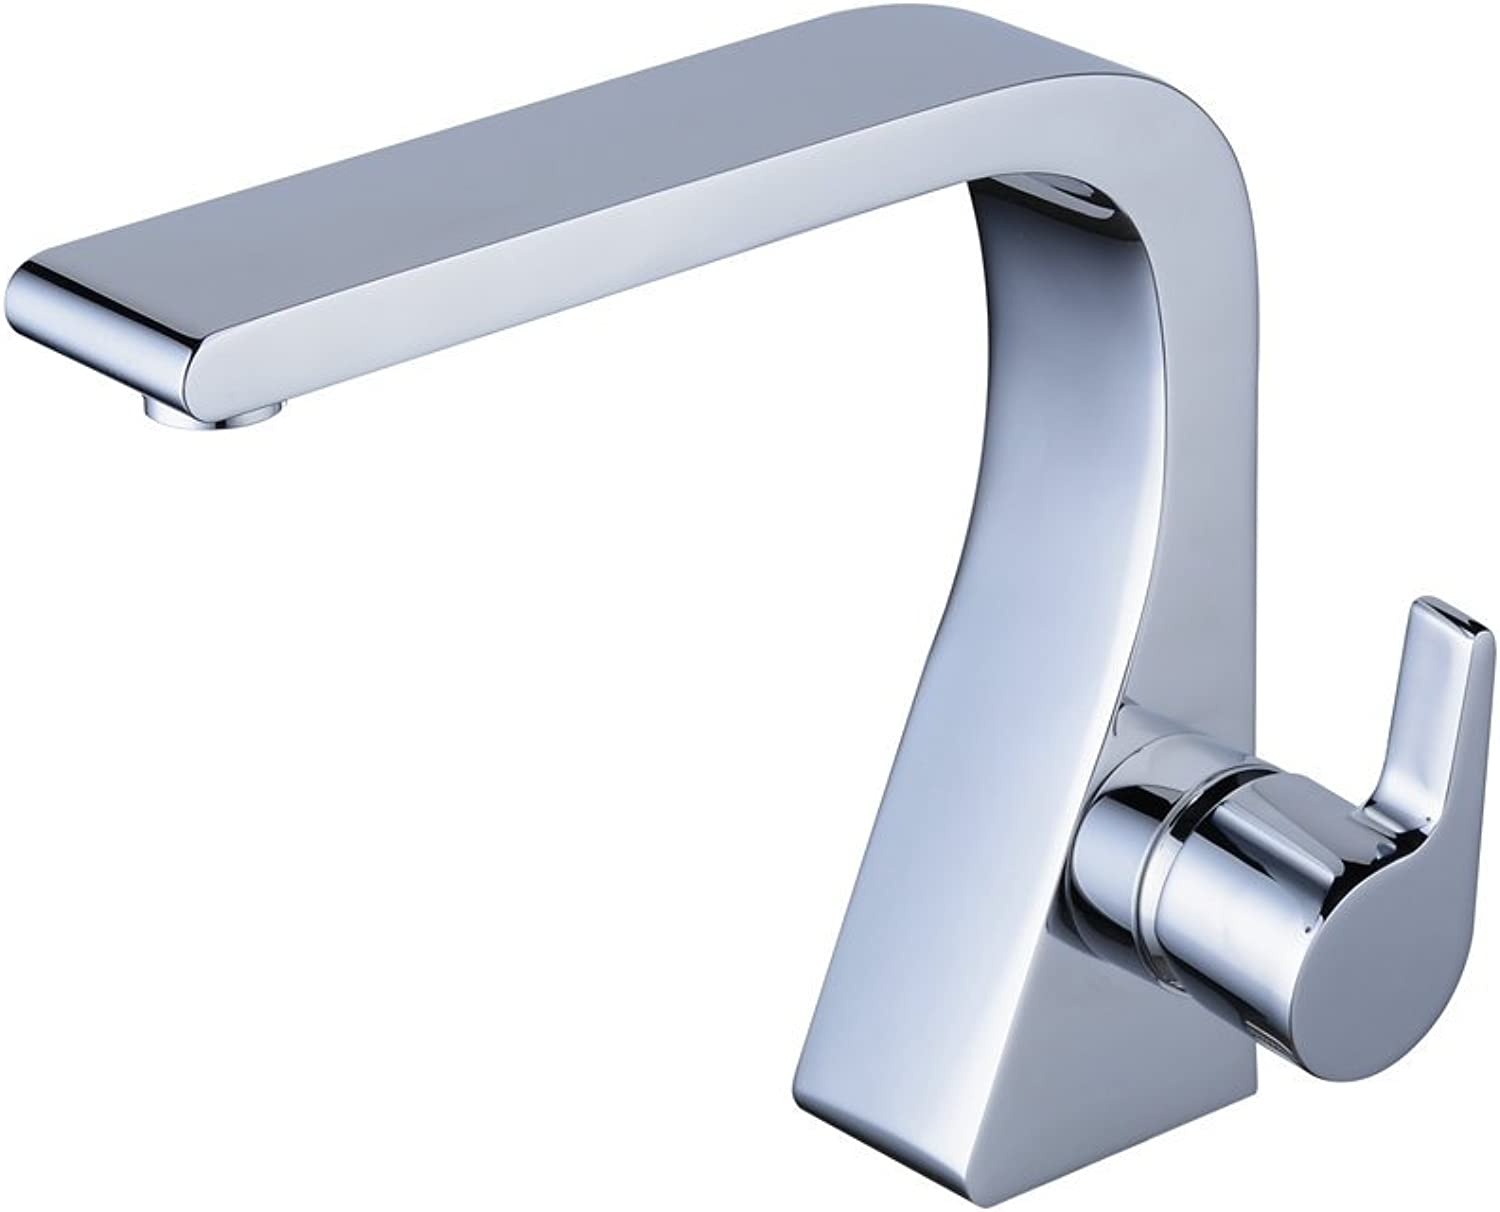 QZH Bathroom Basin Faucet Single Hole Single Handle Sink Faucet Hot And Cold Water Mixing Tap Copper Scratch-Resistant Multi-color Optional,Silver